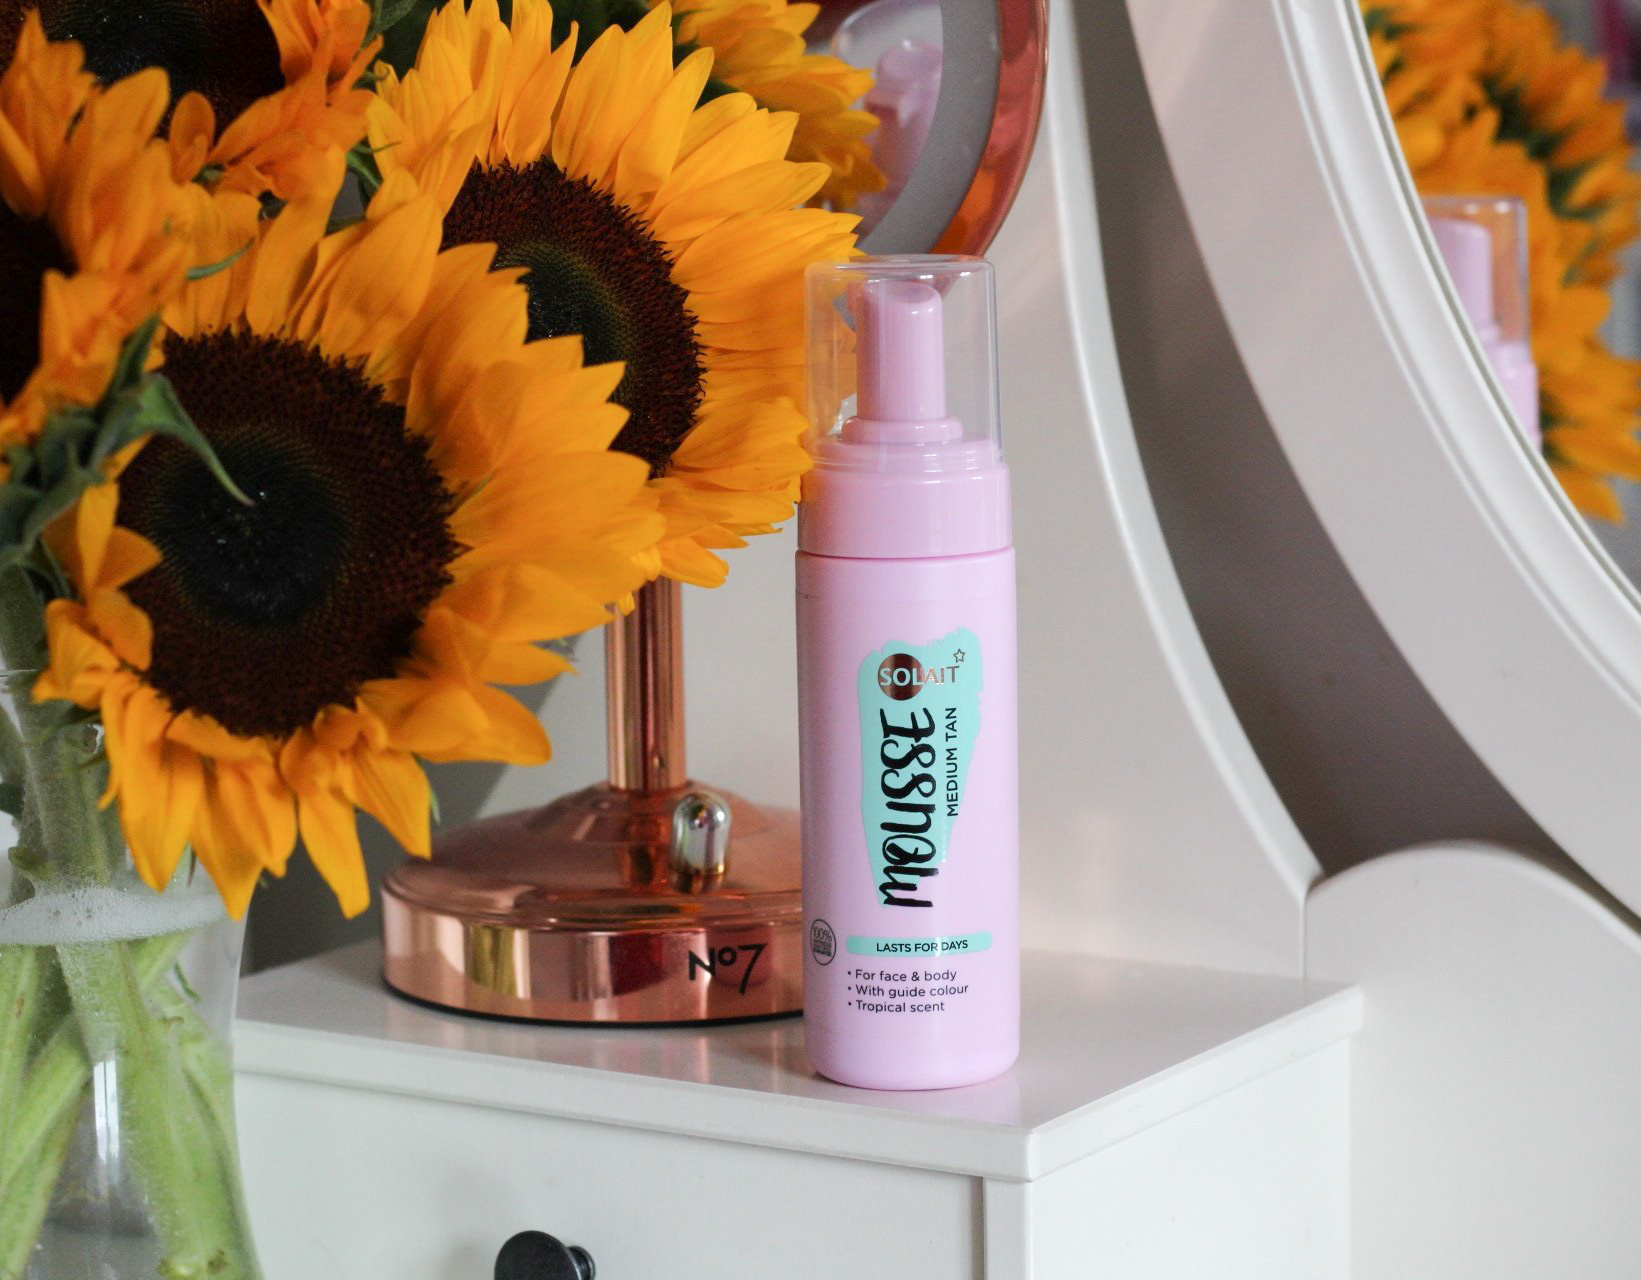 Superdrug Solait Mousse Tan – Foolproof Fake Tan